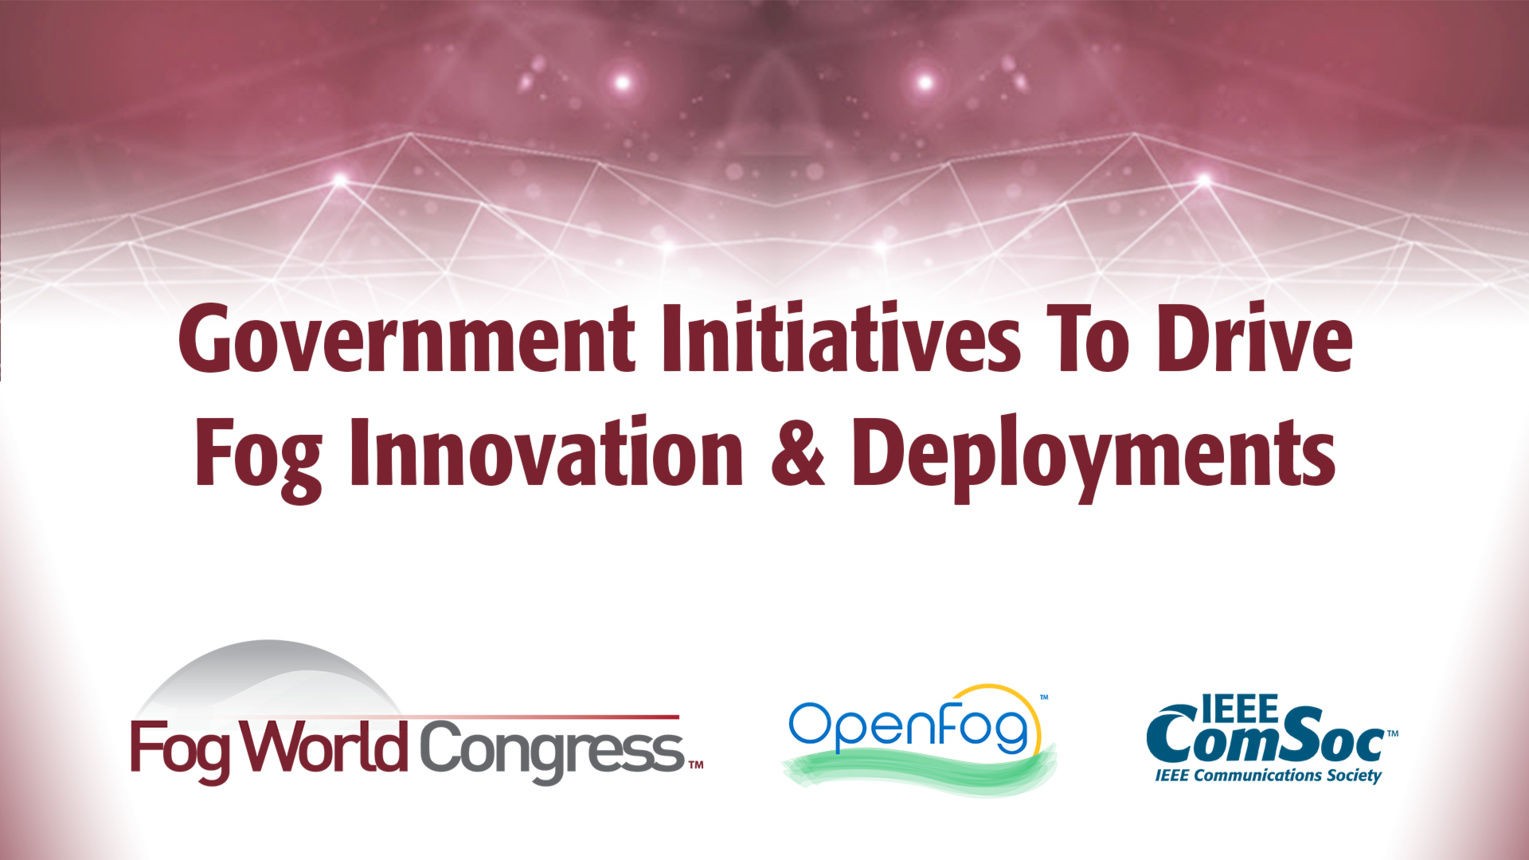 Government Initiatives To Drive Fog Innovation & Deployments - Fog World Congress 2017